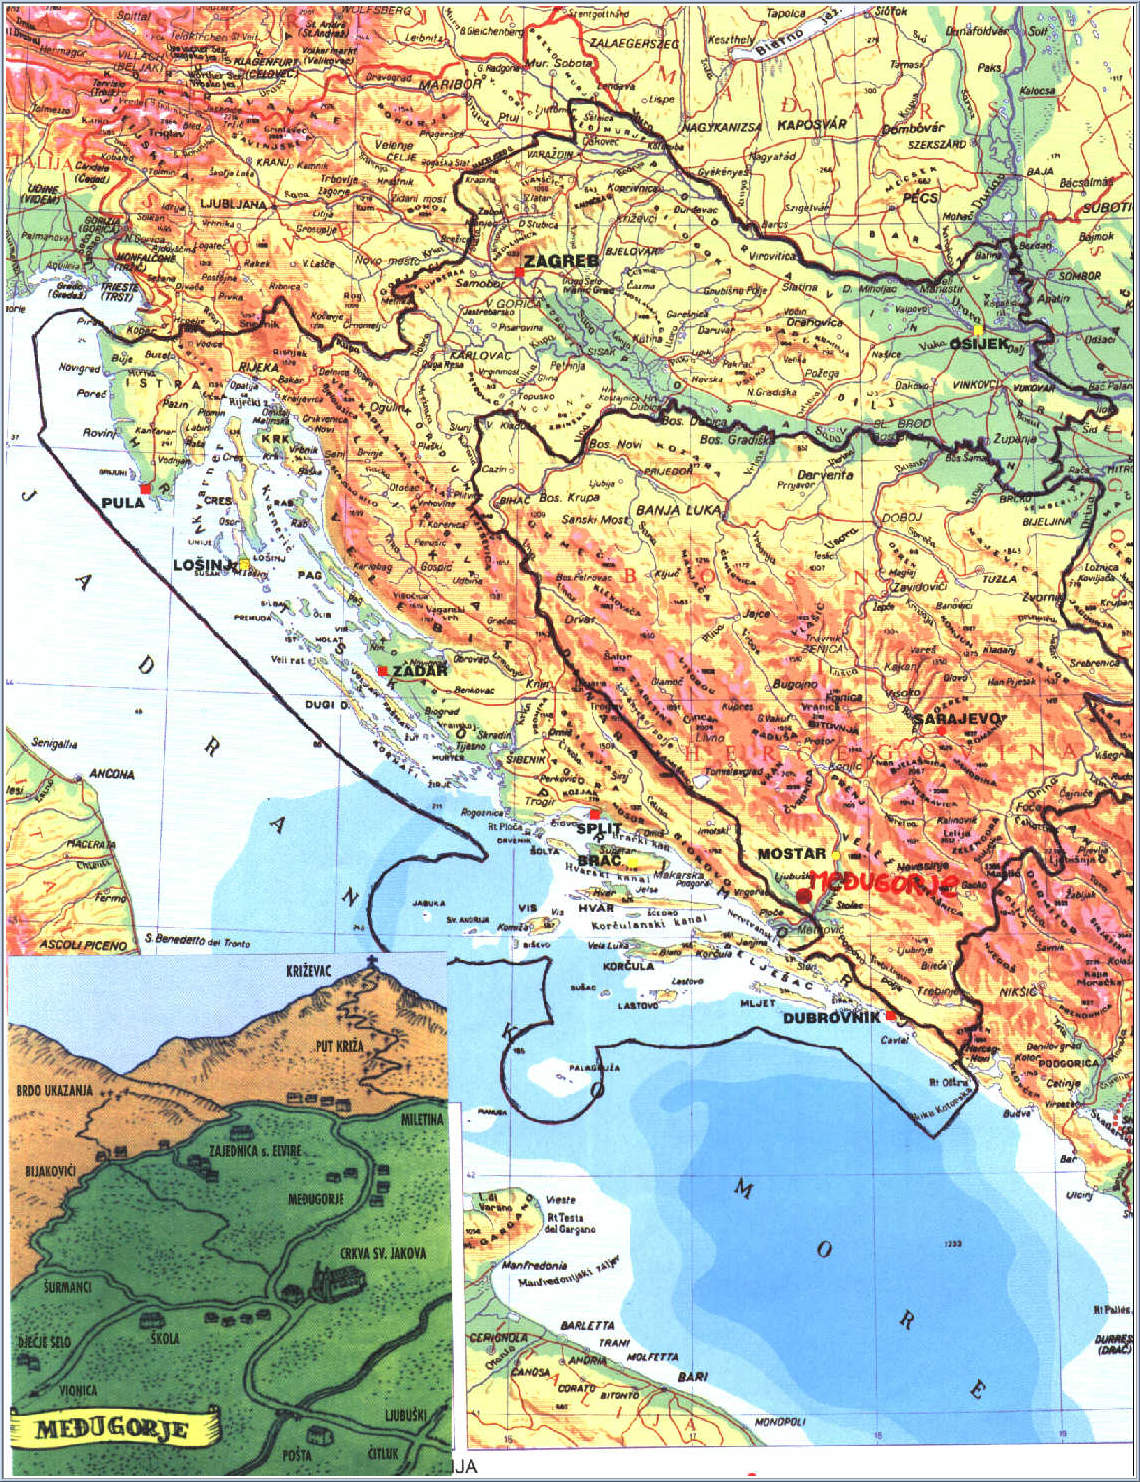 Medjugorje Map - Bosnia and Herzegovina, Croatia